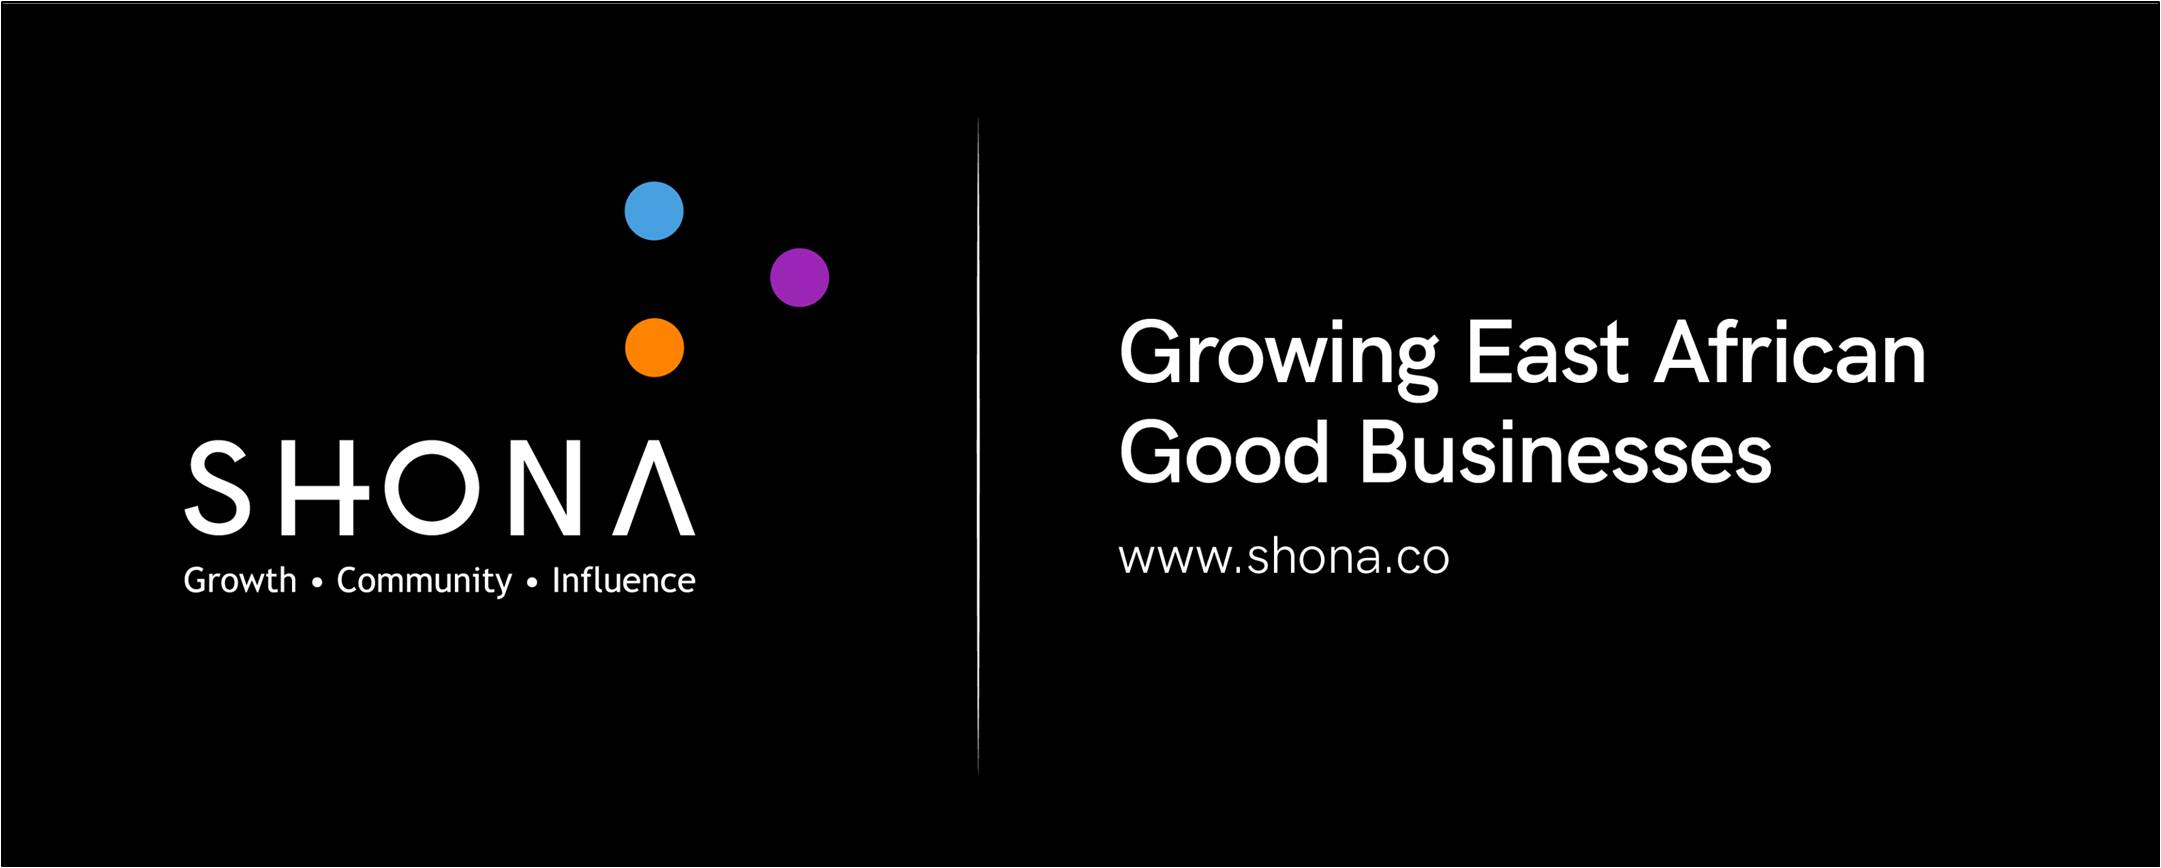 SHONA.co - SHONA Growth Program Movemeback African initiative cover image